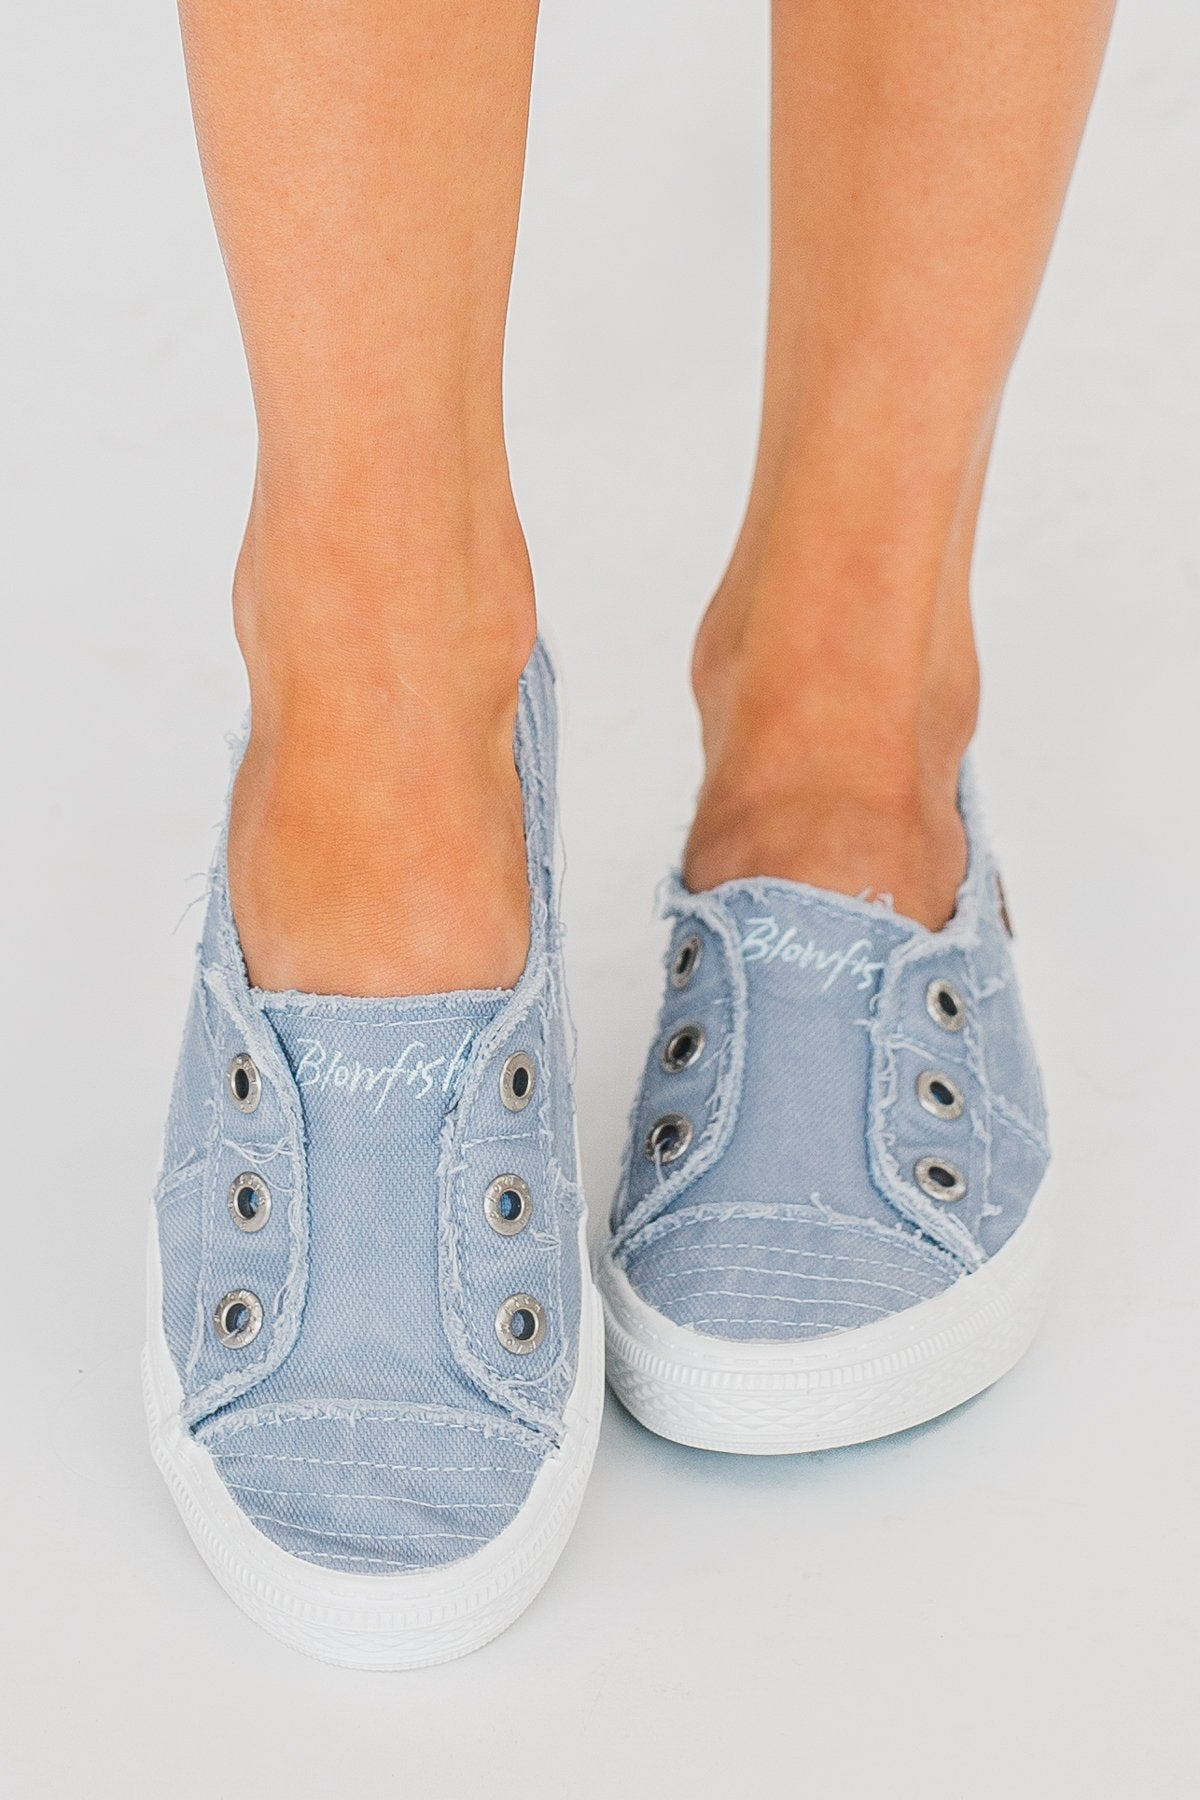 Blowfish Aussie Sneakers- Baby Blue Smoked